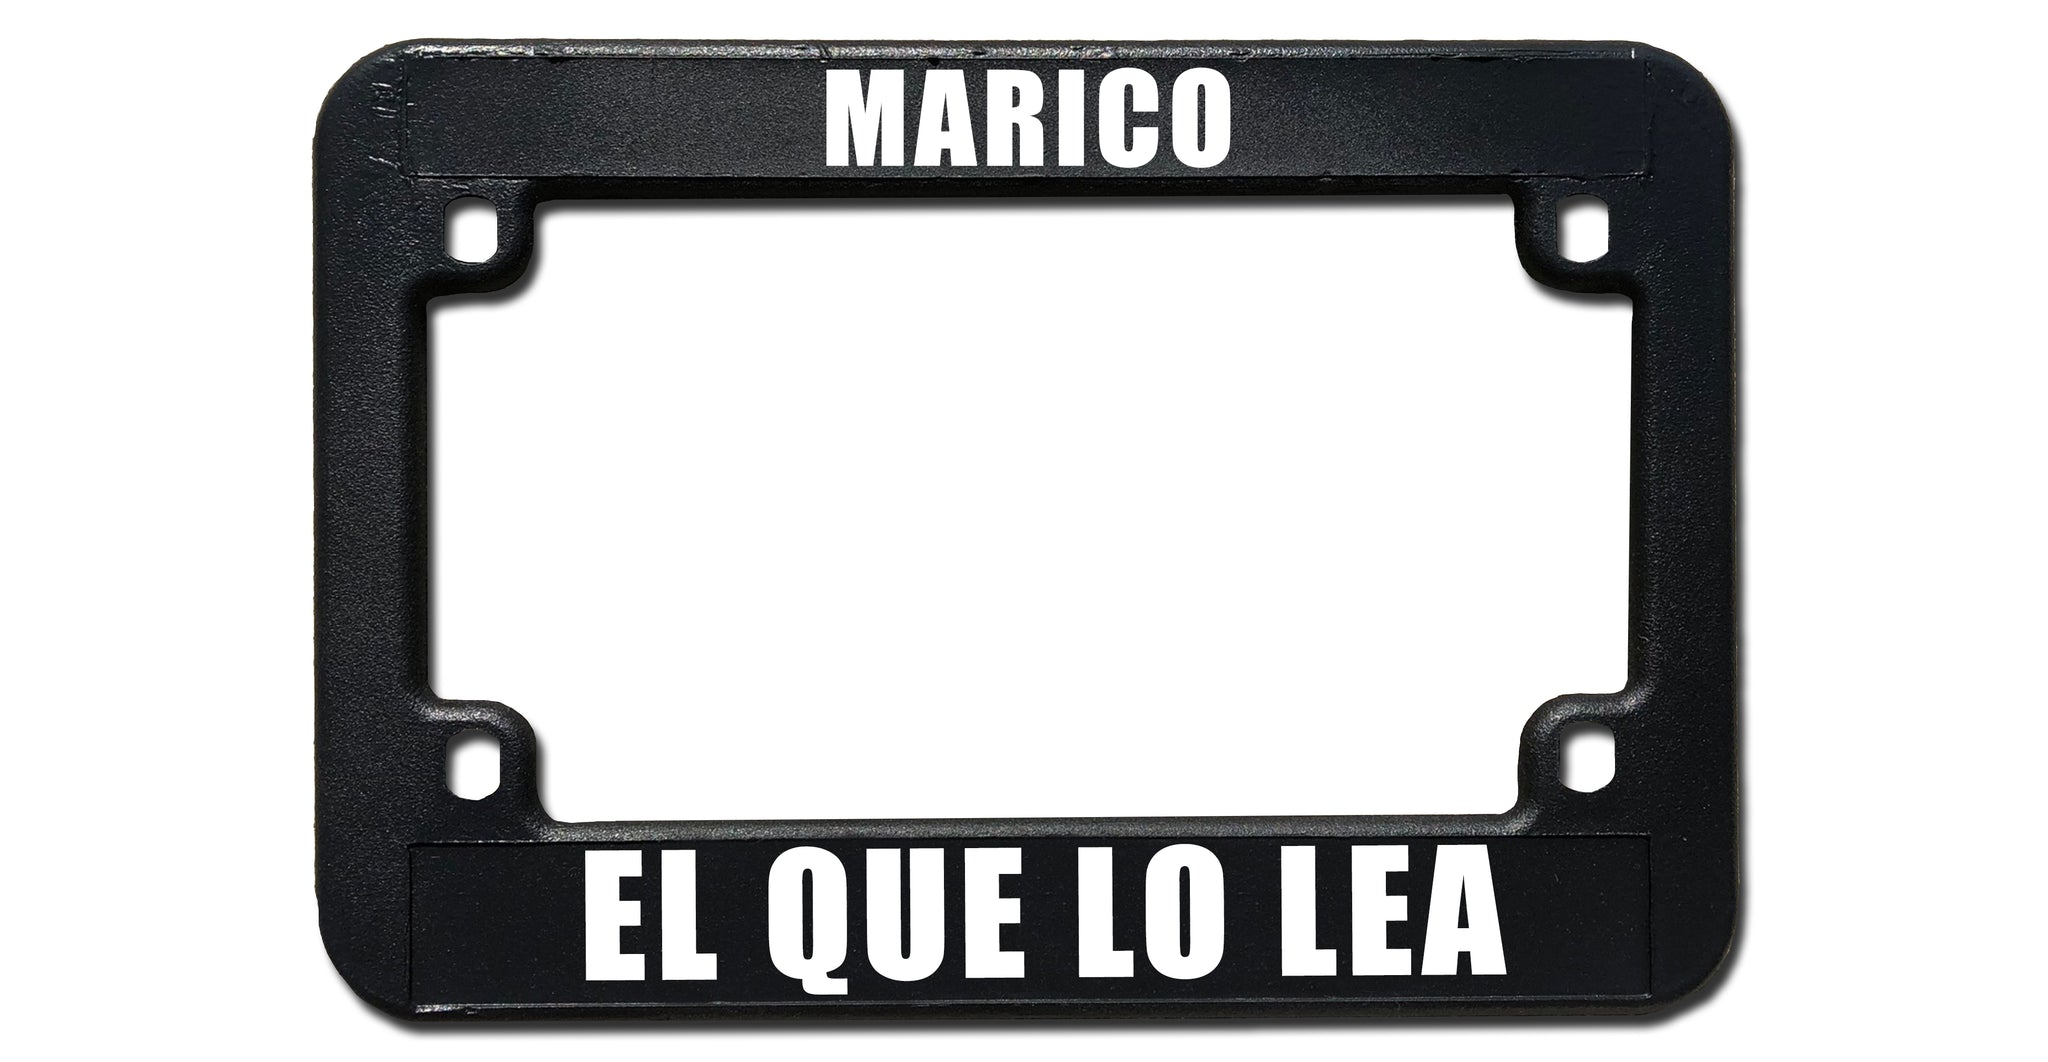 MARICO | Motorcycle License Plate Frame | Custom | Black Frame ...